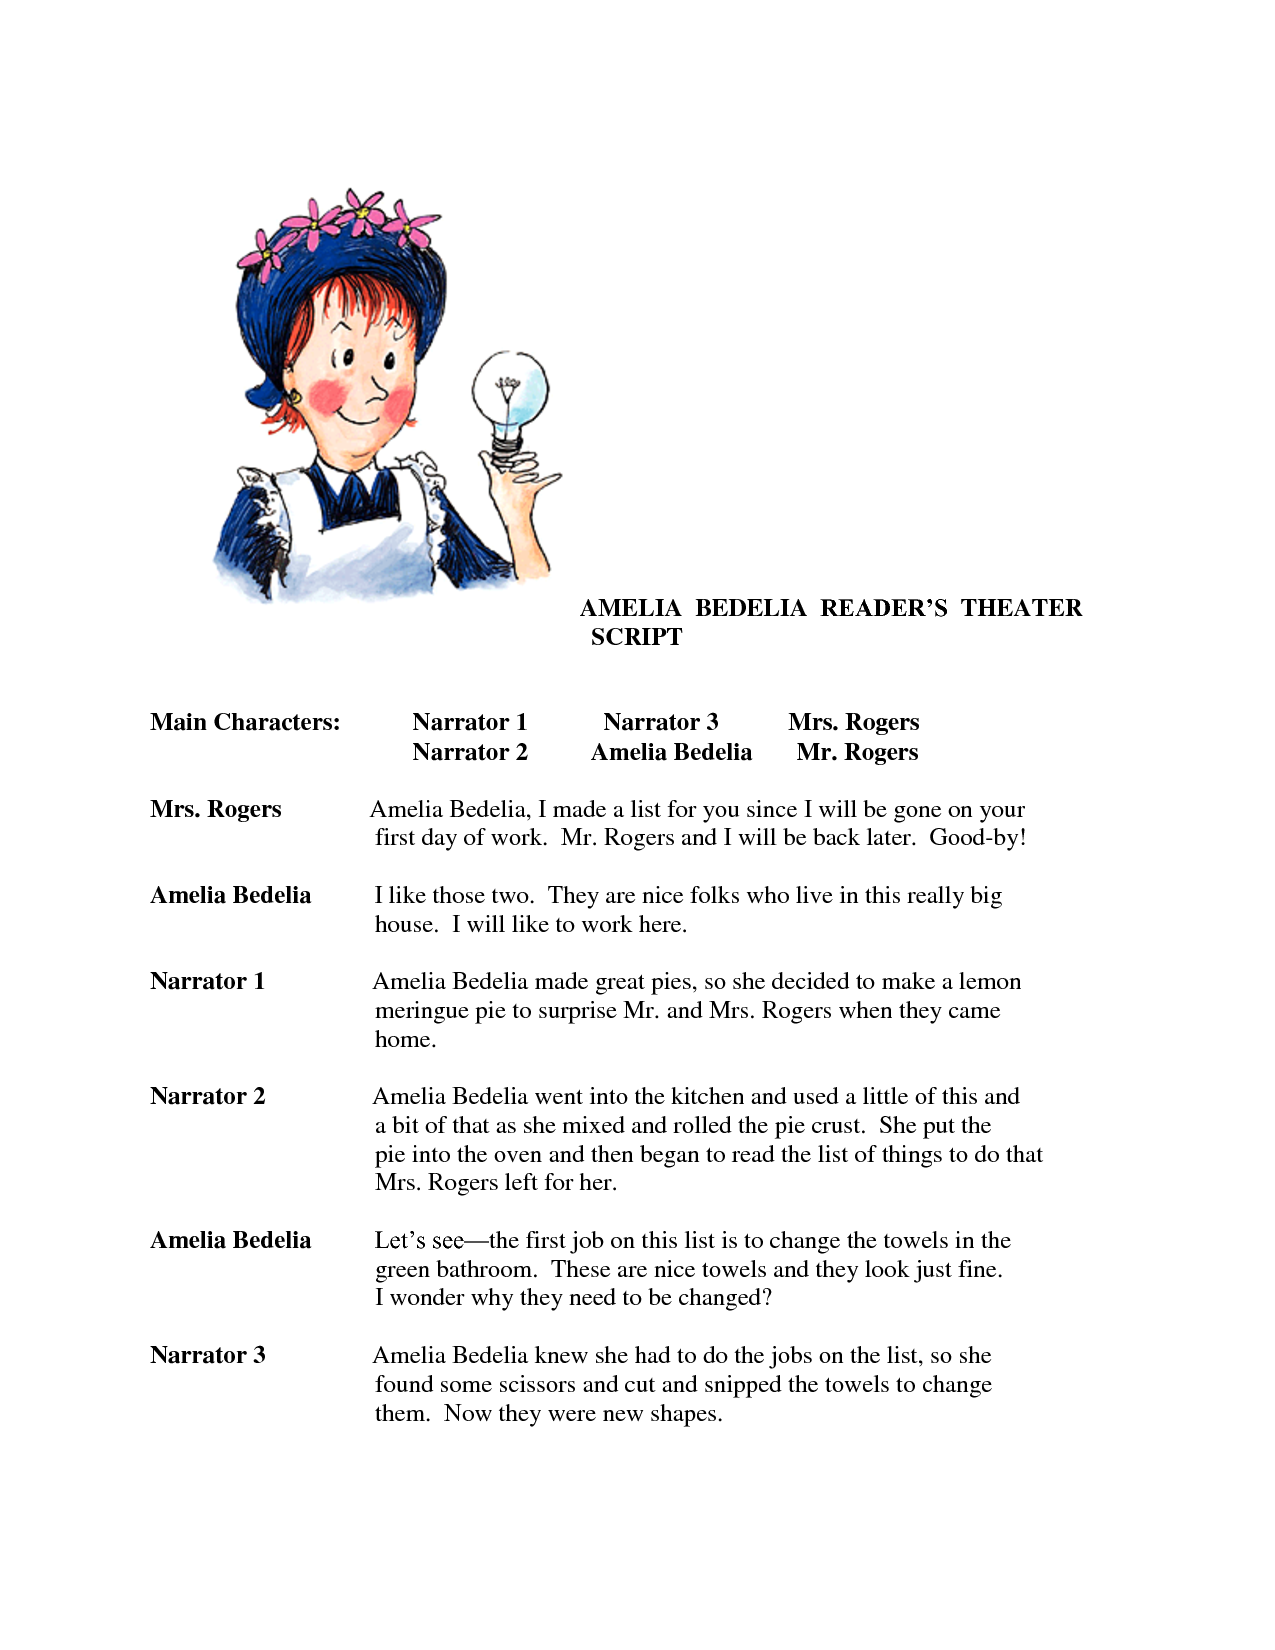 Worksheets Amelia Bedelia Worksheets worksheets ameleia bedelia amelia readers theater theater